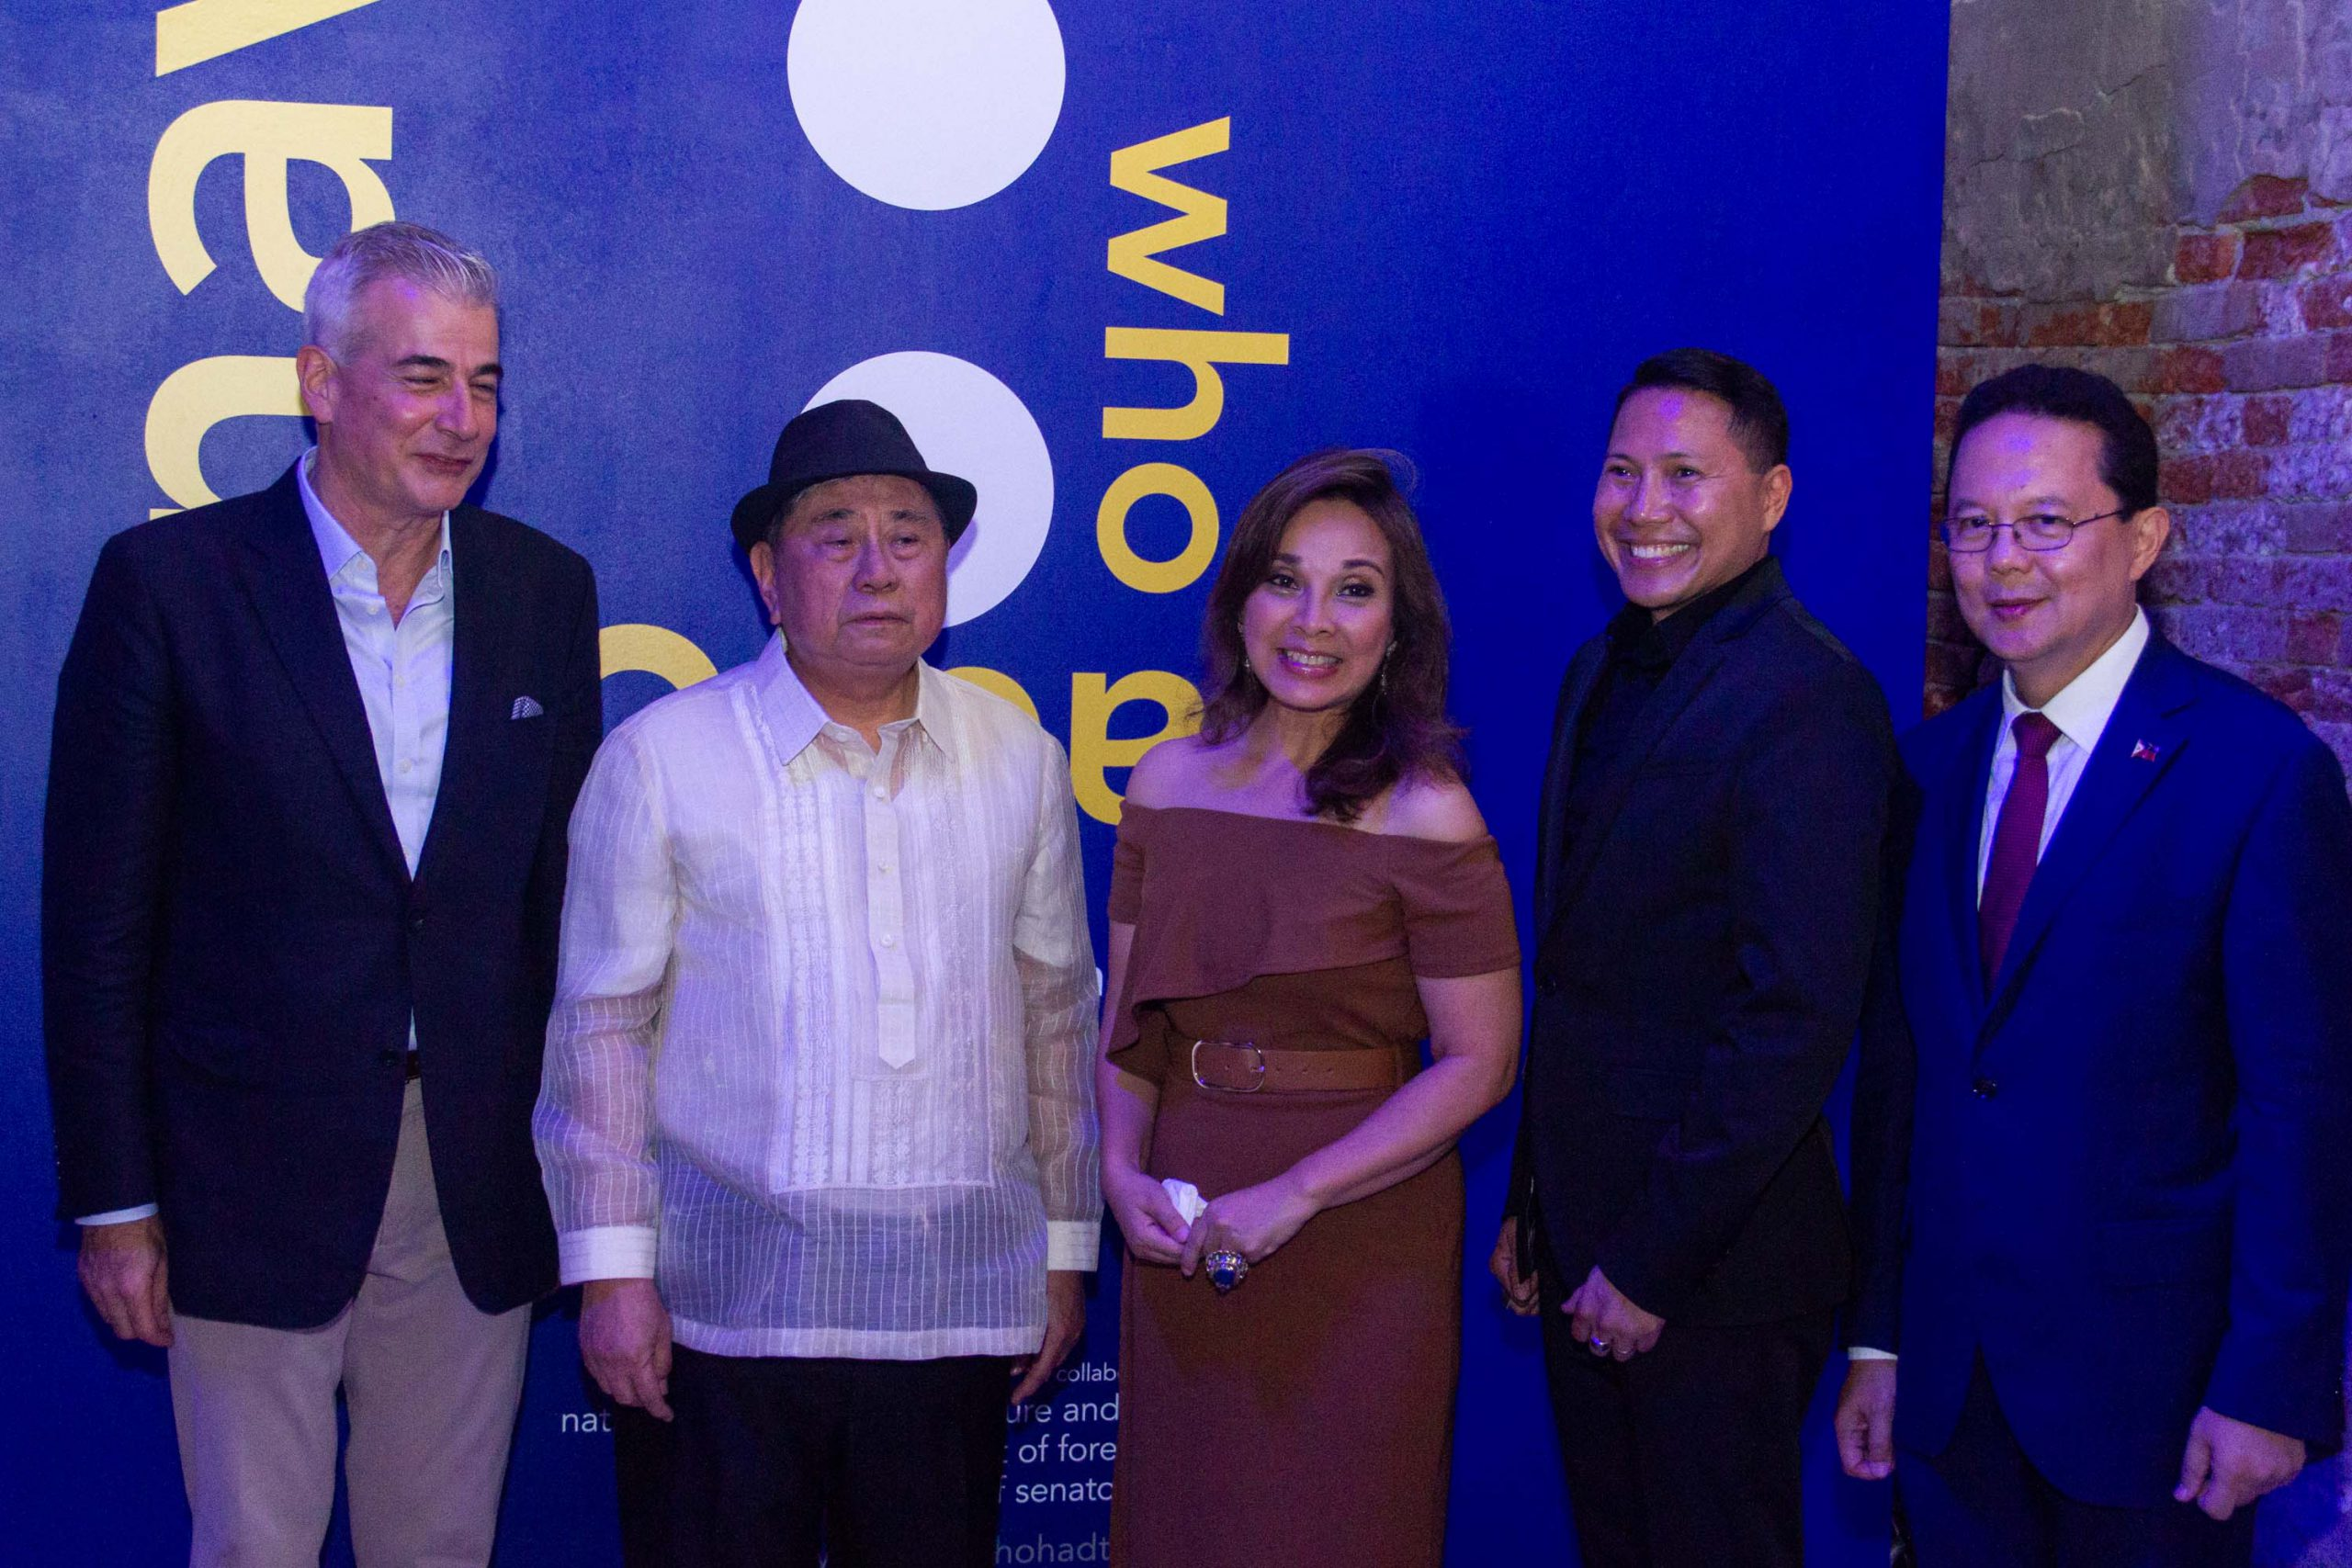 Vernissage of the Philippines' 2nd participation in the Venice Architecture Biennale